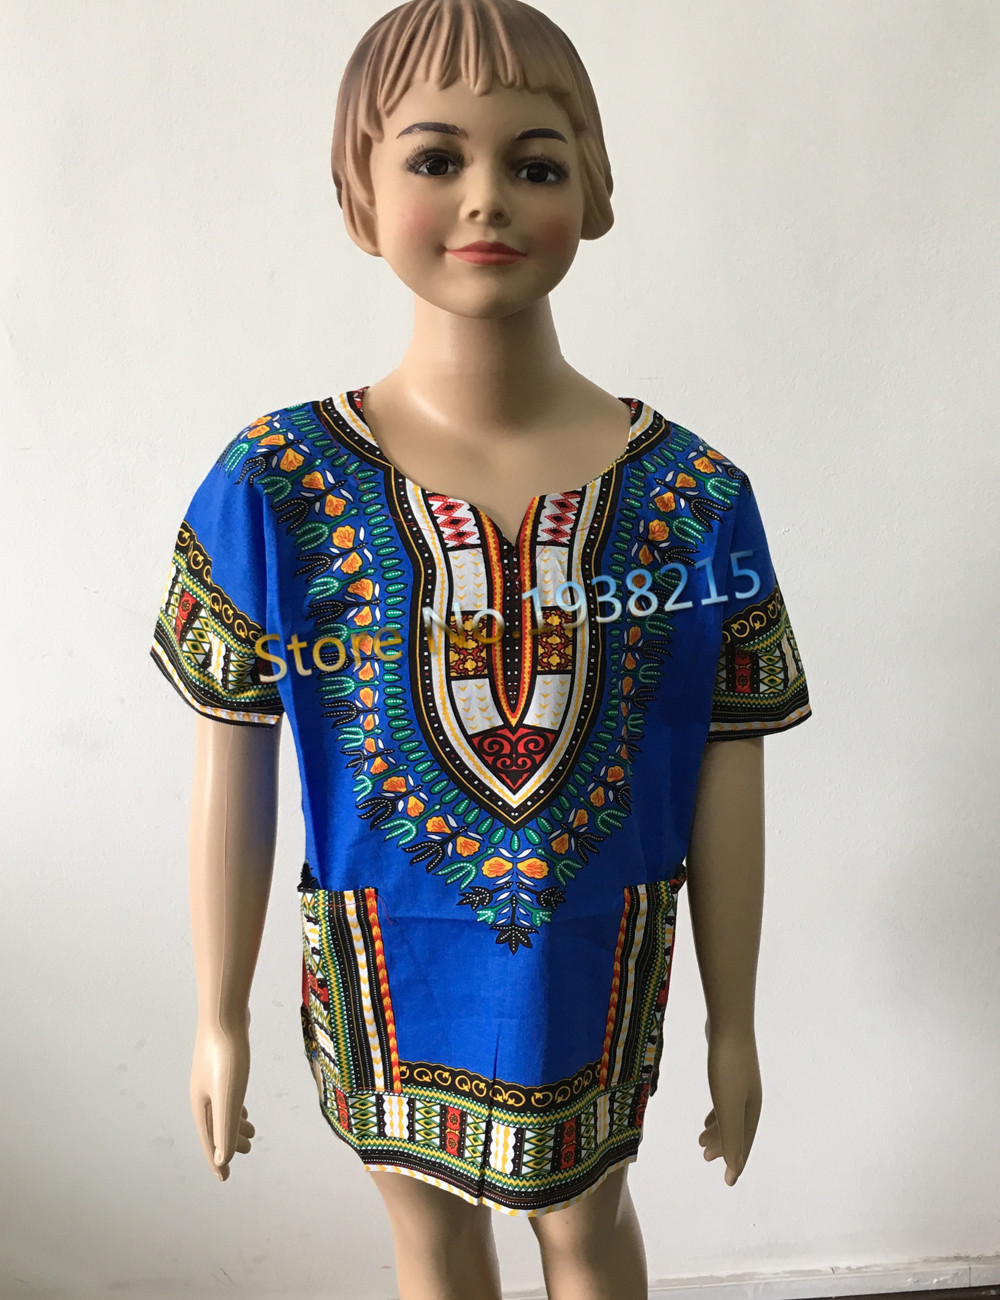 Shirt design boy 2016 - Aliexpress Com Buy Wholesale 2016 Child New Fashion Design Traditional African Clothing Print Dashiki T Shirt For Boys And Girls From Reliable Clothing